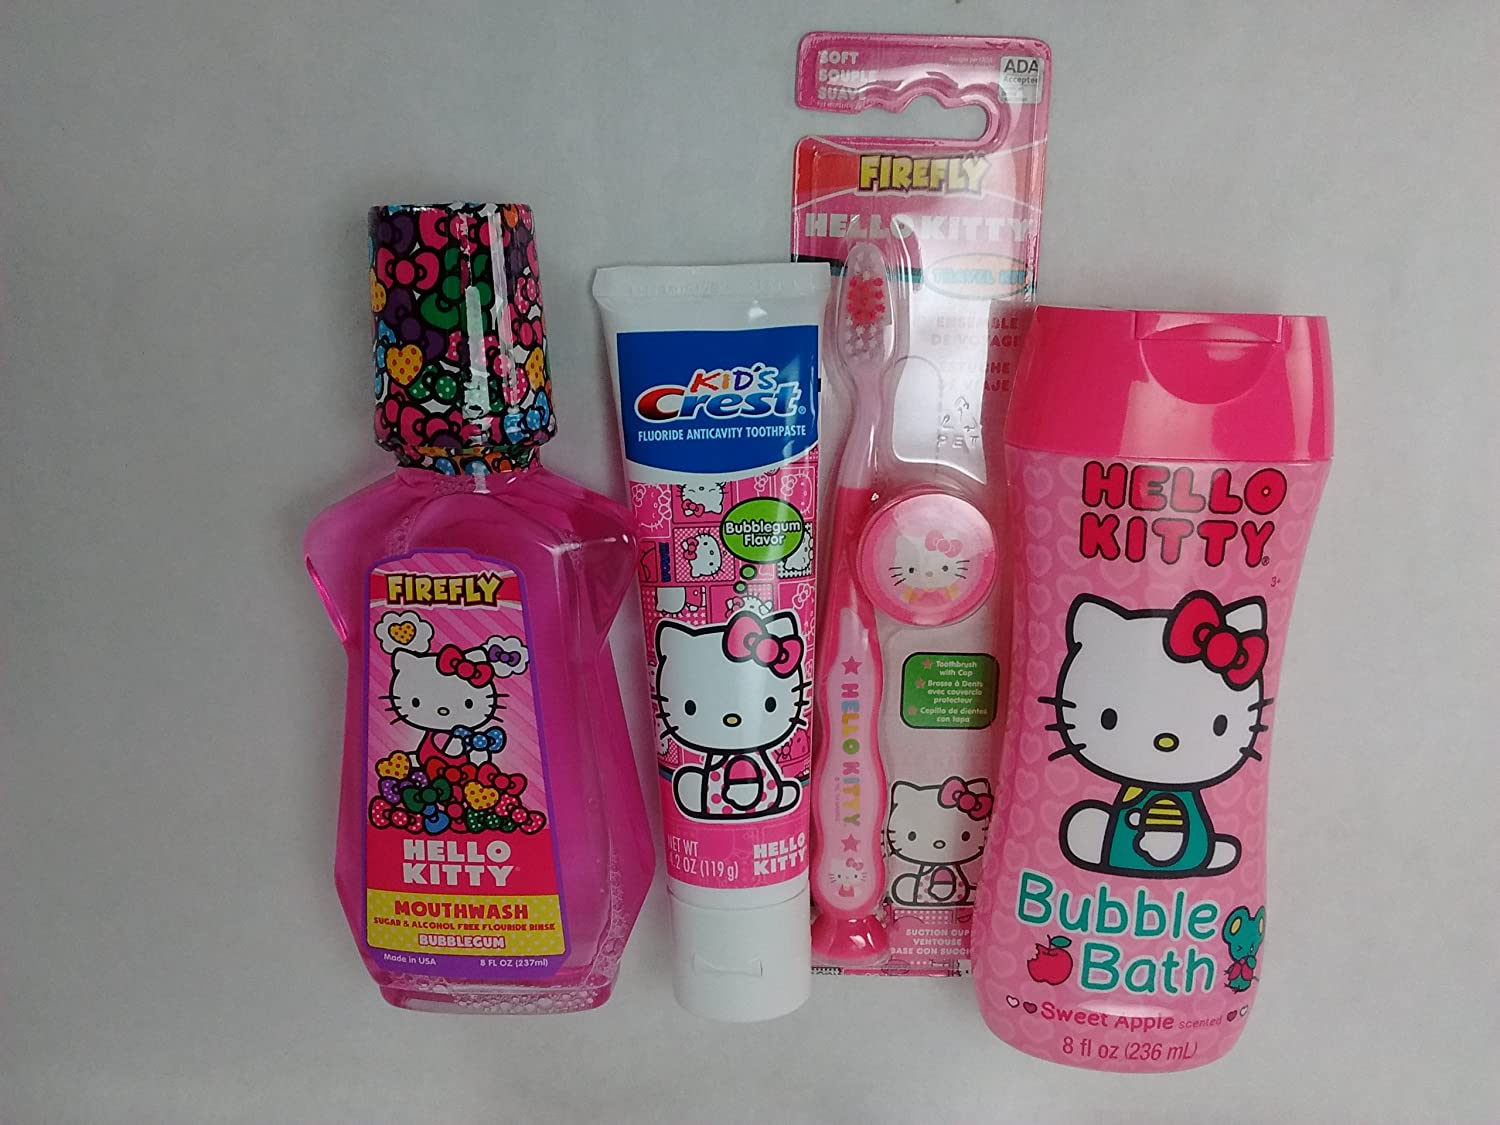 Amazon.com: Hello Kitty Travel Kit Toothbrush with Cap Kids Crest Bubblegum Flavor Toothpaste Mouthwash Bubblegum Flavor Plus Bubble Bath Sweet Apple ...